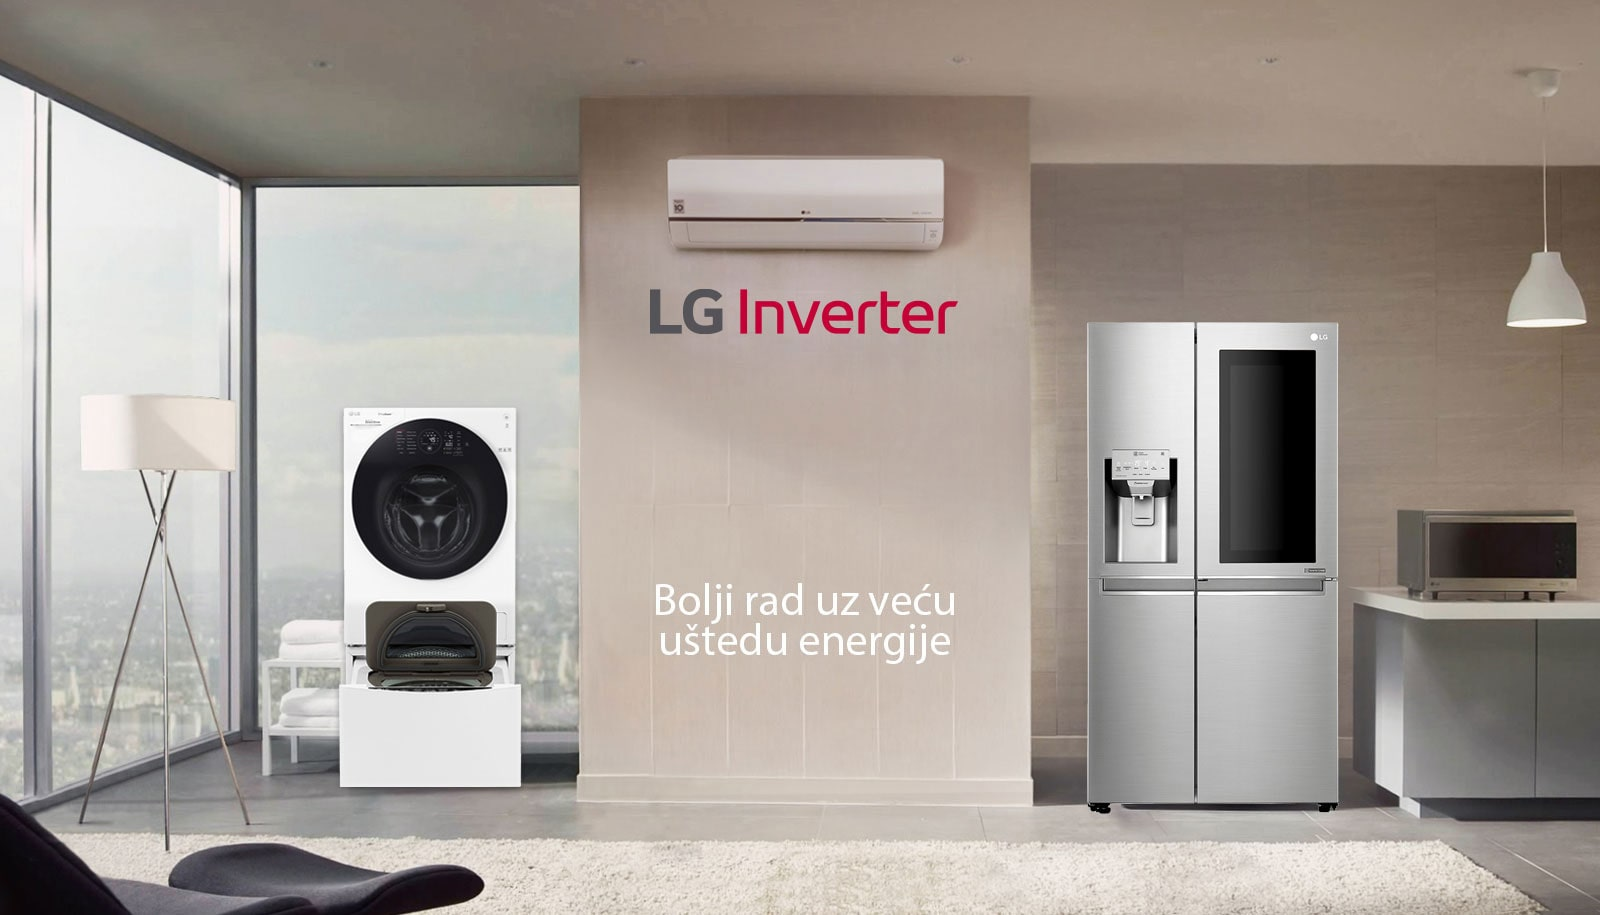 Global_Inverter_2018_01_01_Intro_D_v2